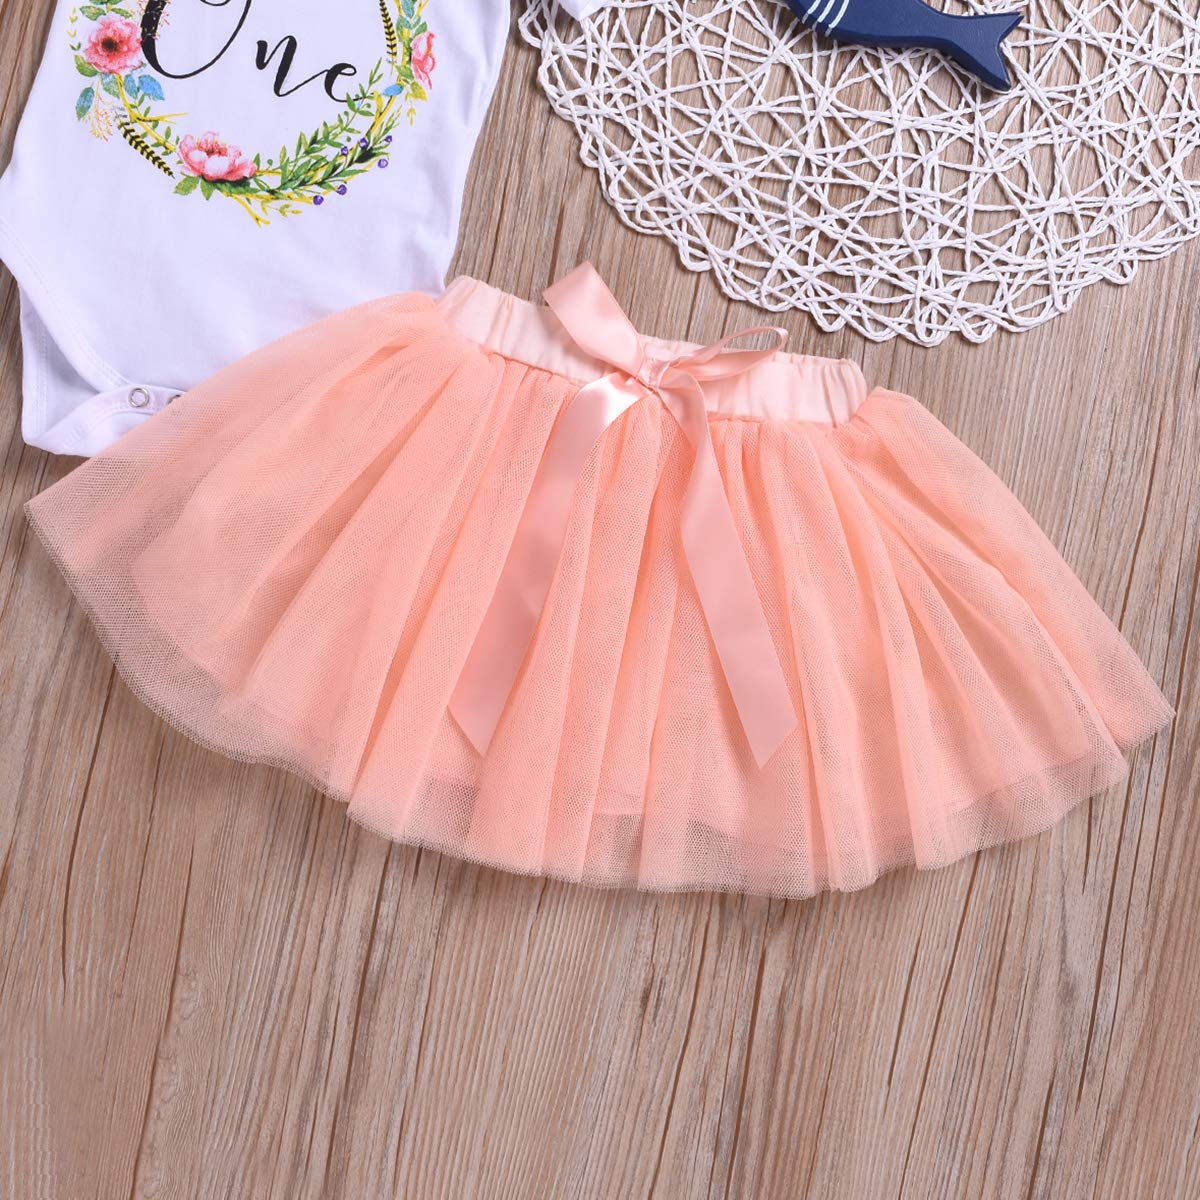 Peach Pink Bowtie Tulle Skirt Outfits Autumn My First Birthday Baby Girl Clothes One Flower Romper